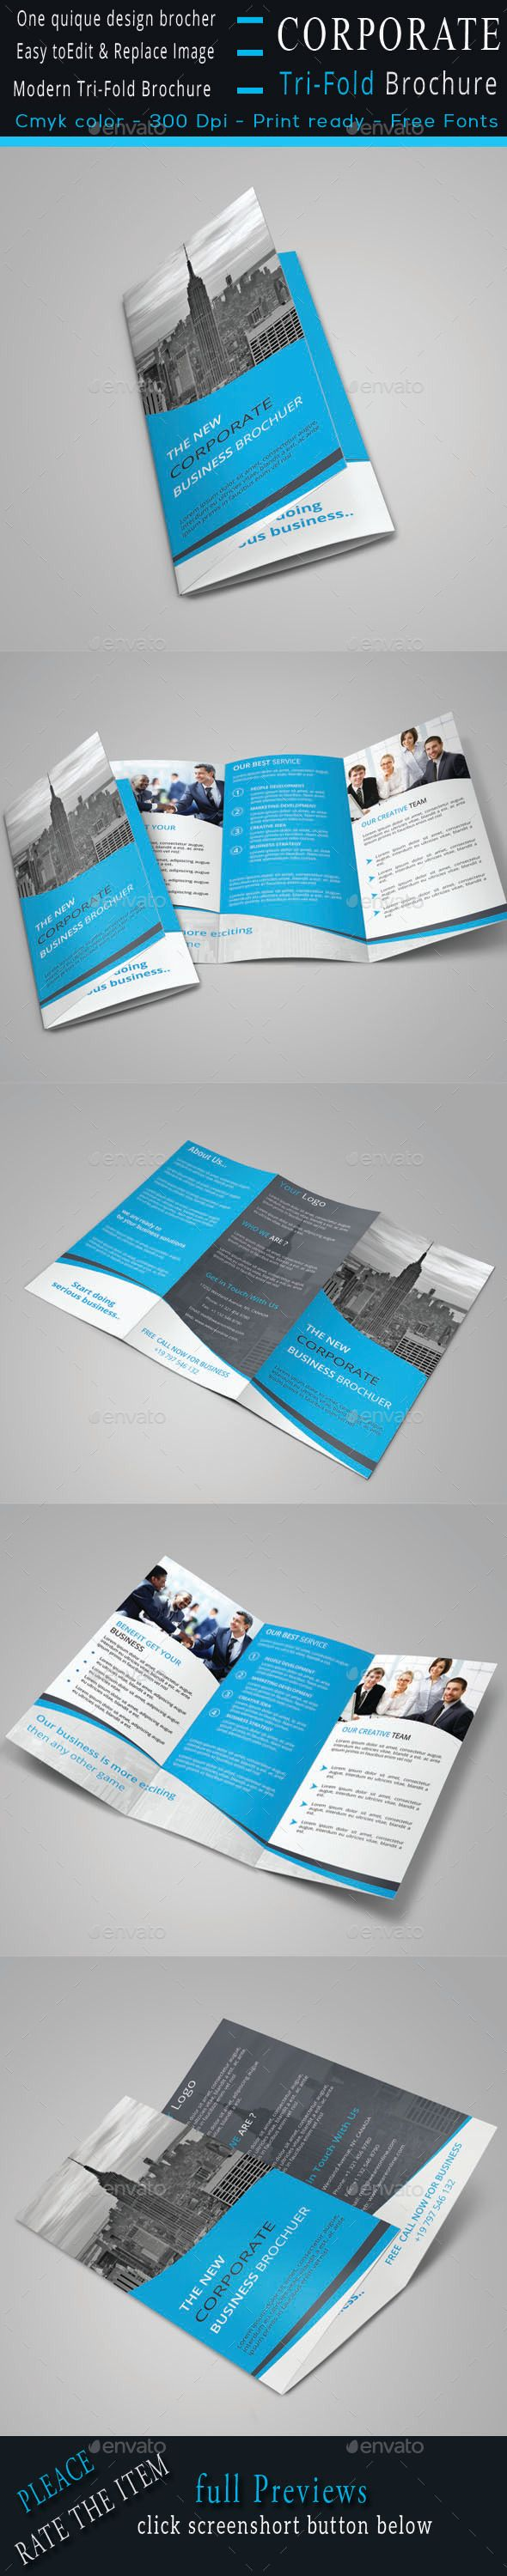 best ideas about advertisement template wedding corporate tri fold brochure corporate trifoldtrifold brochureitem corporatebrochure templatescorporate businessbrochuresadvertisement